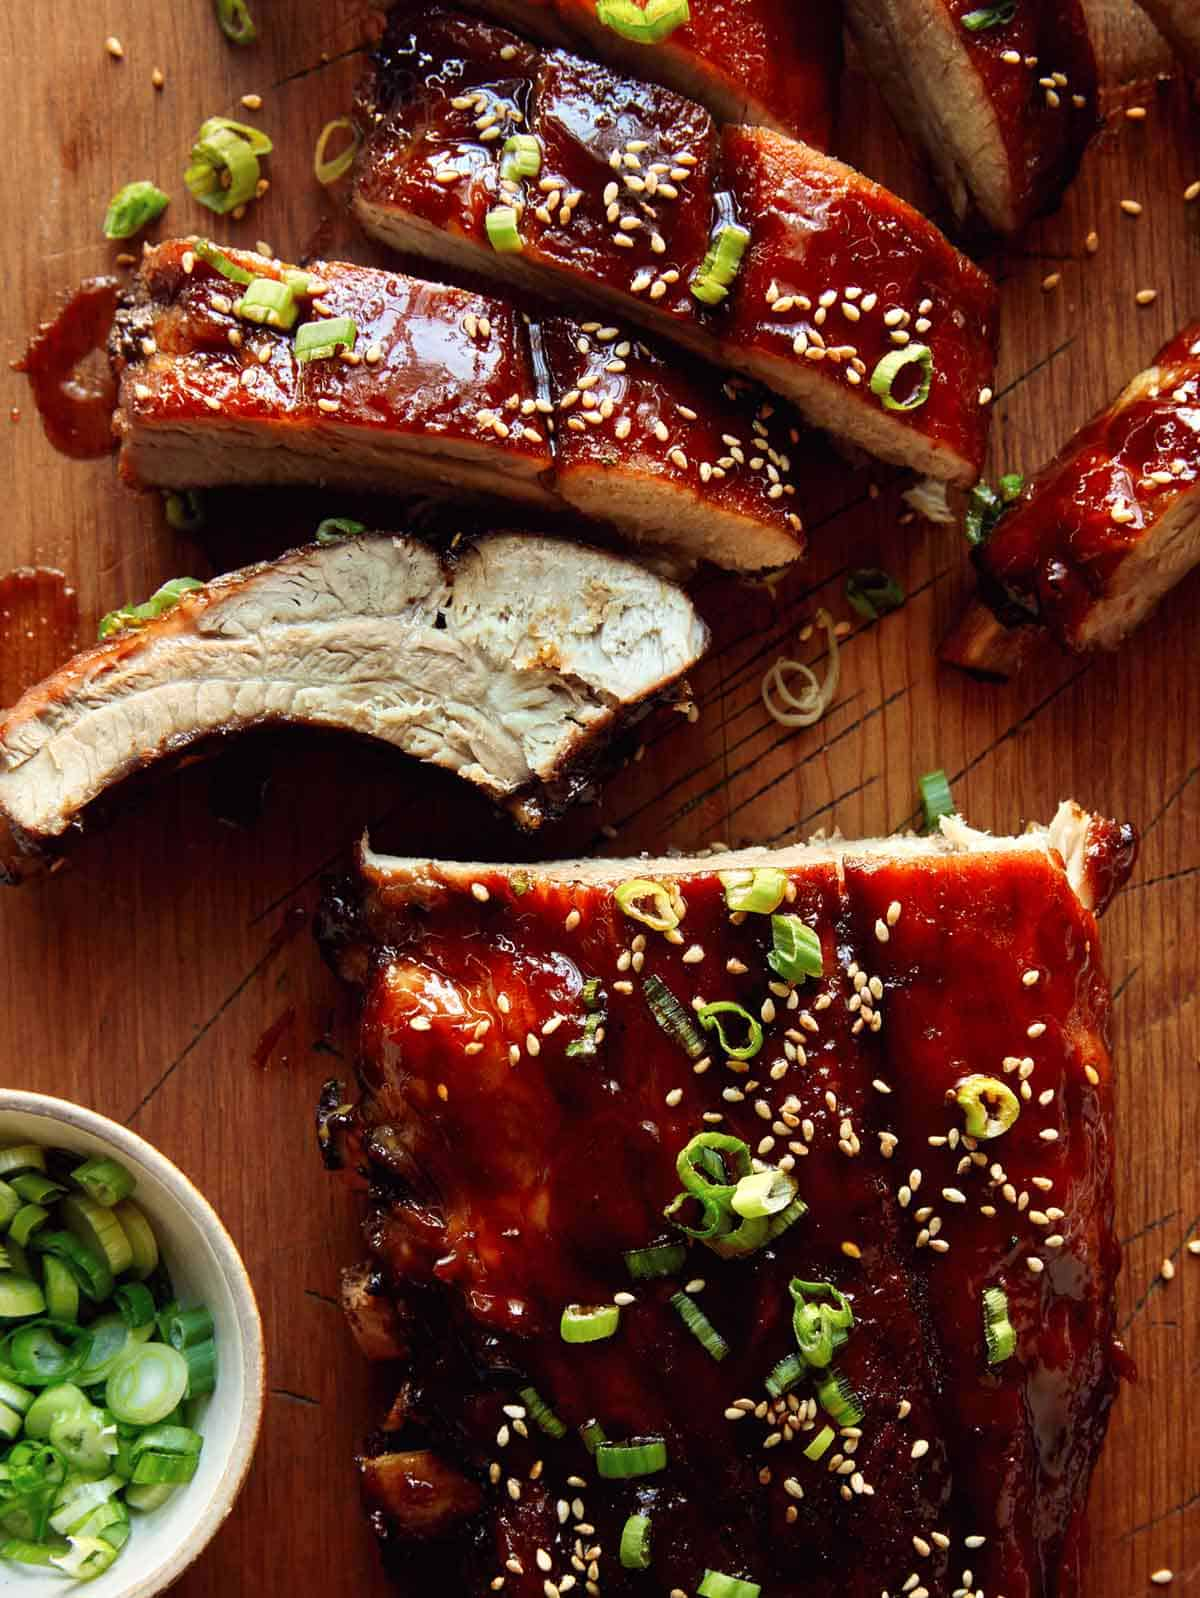 Oven baked sticky ribs on a cutting board.